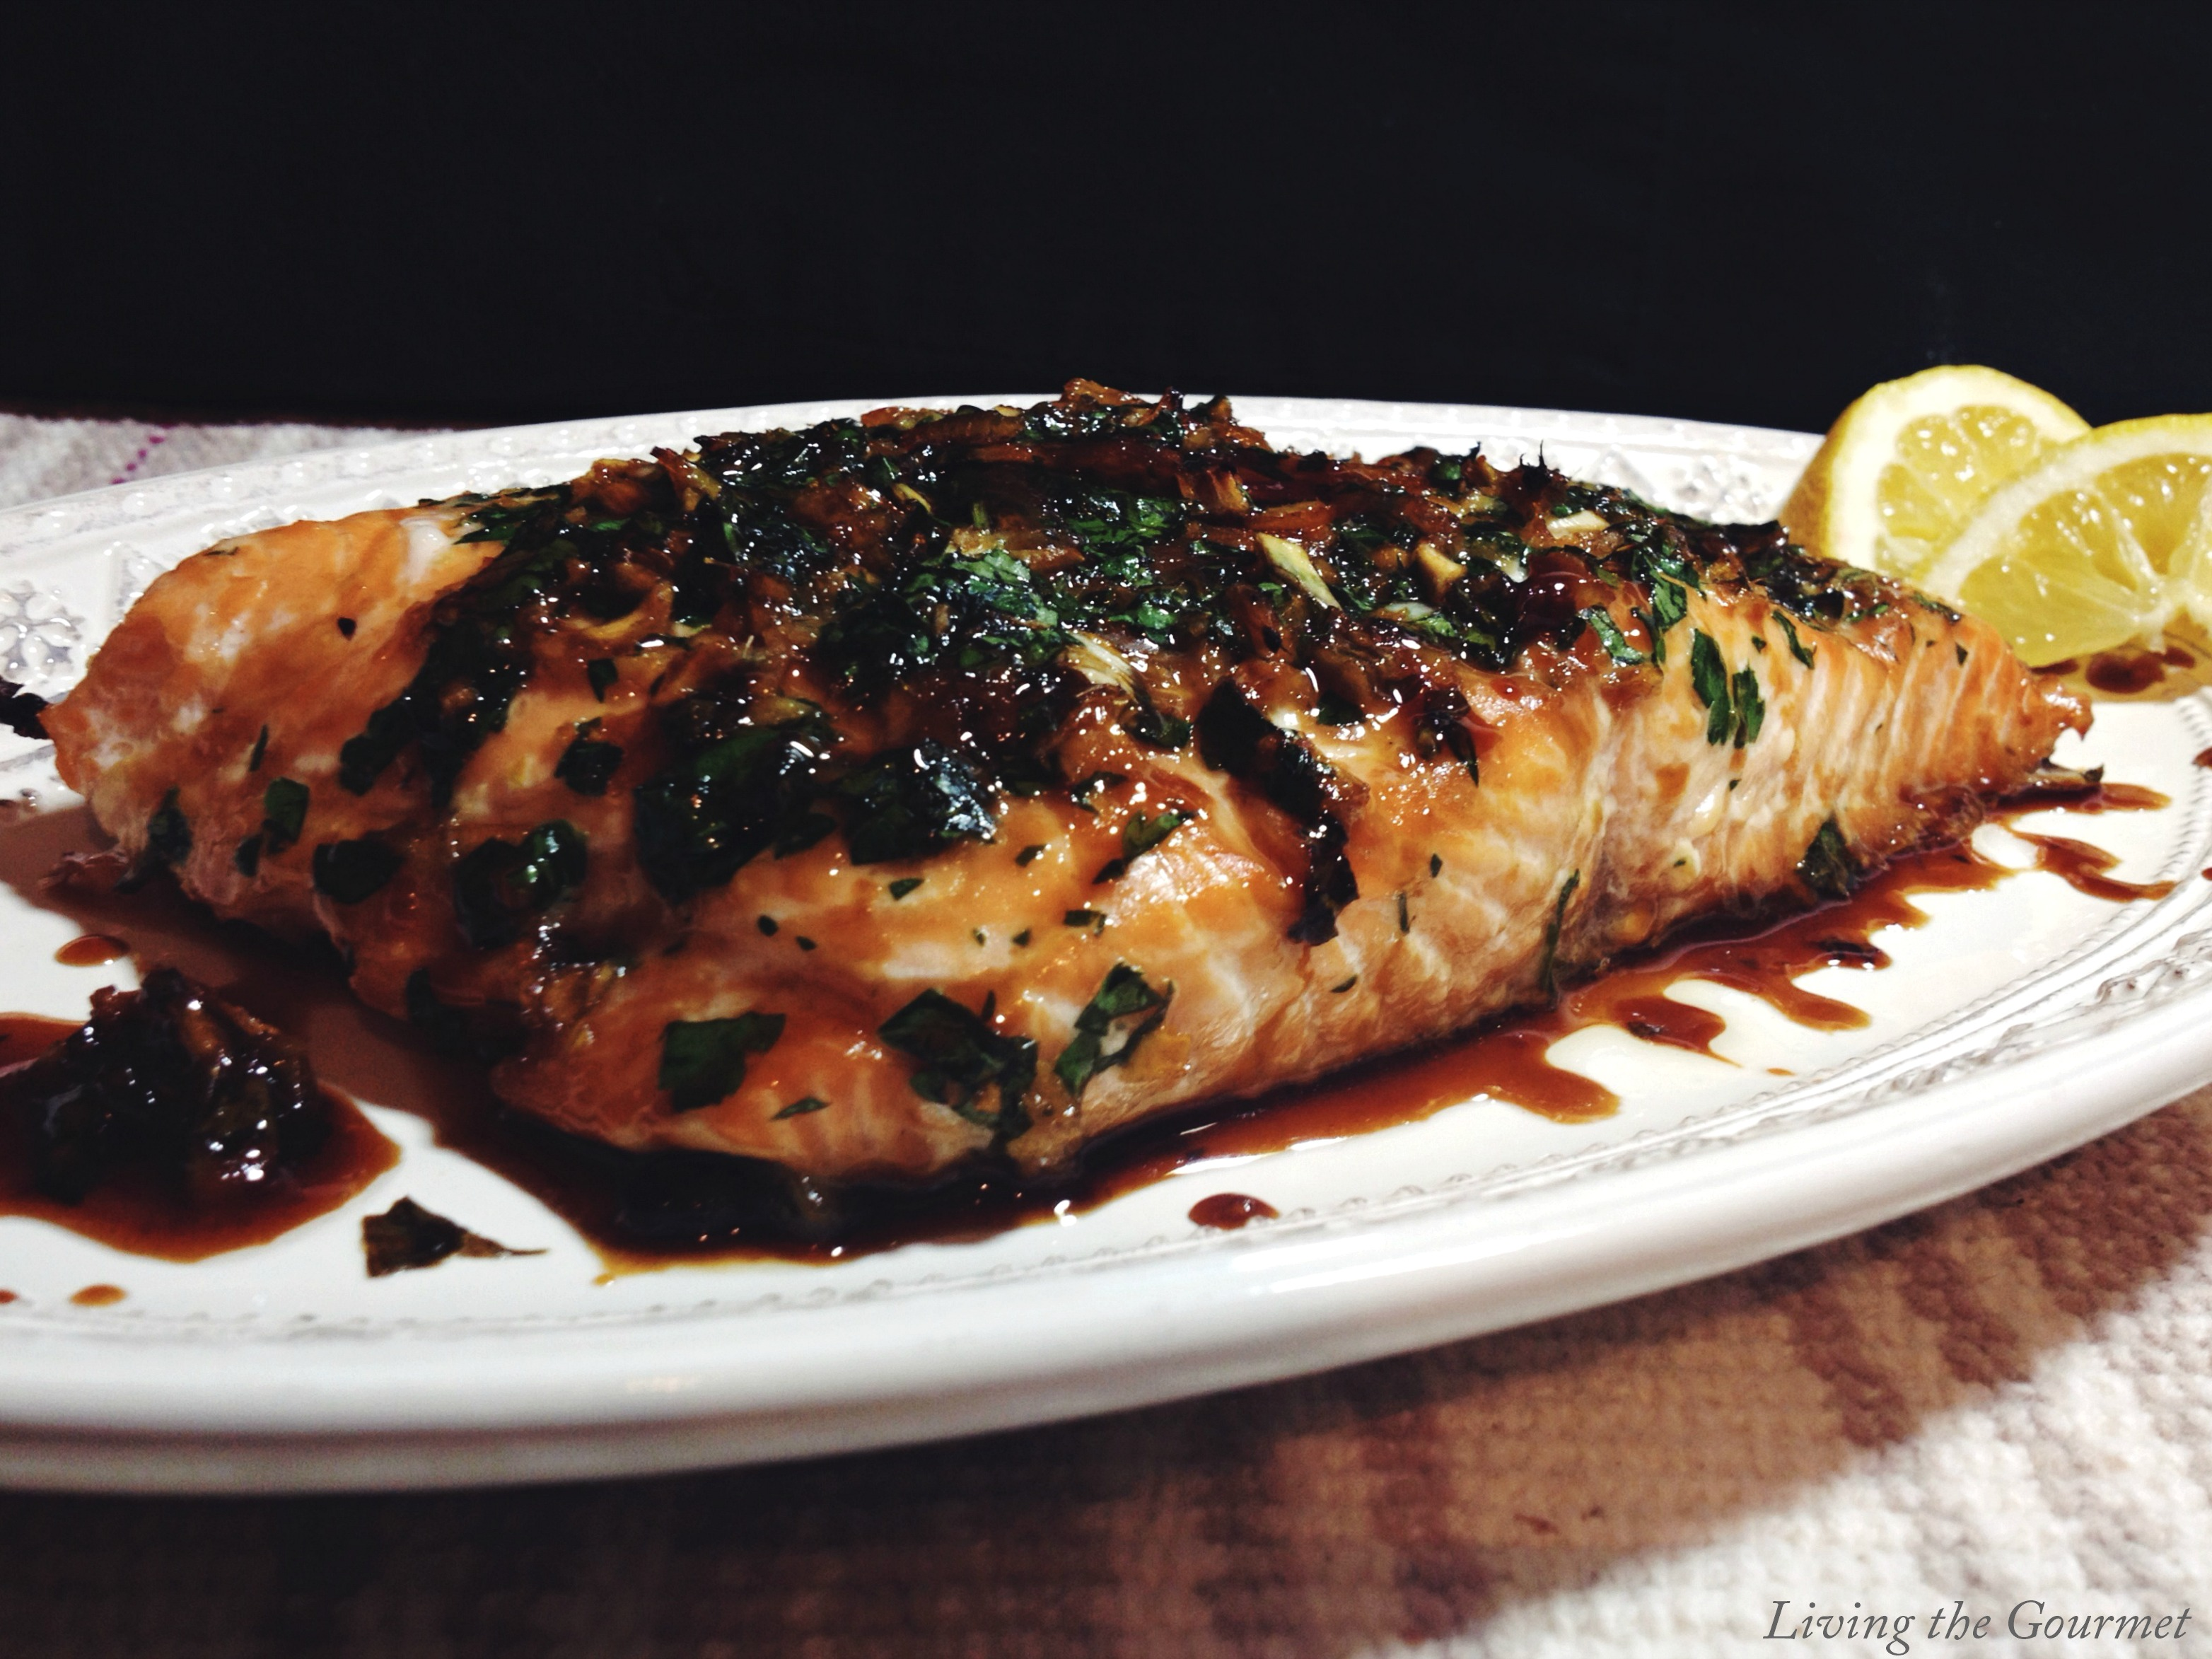 Living the Gourmet: Asian Style Marinated Salmon Filet